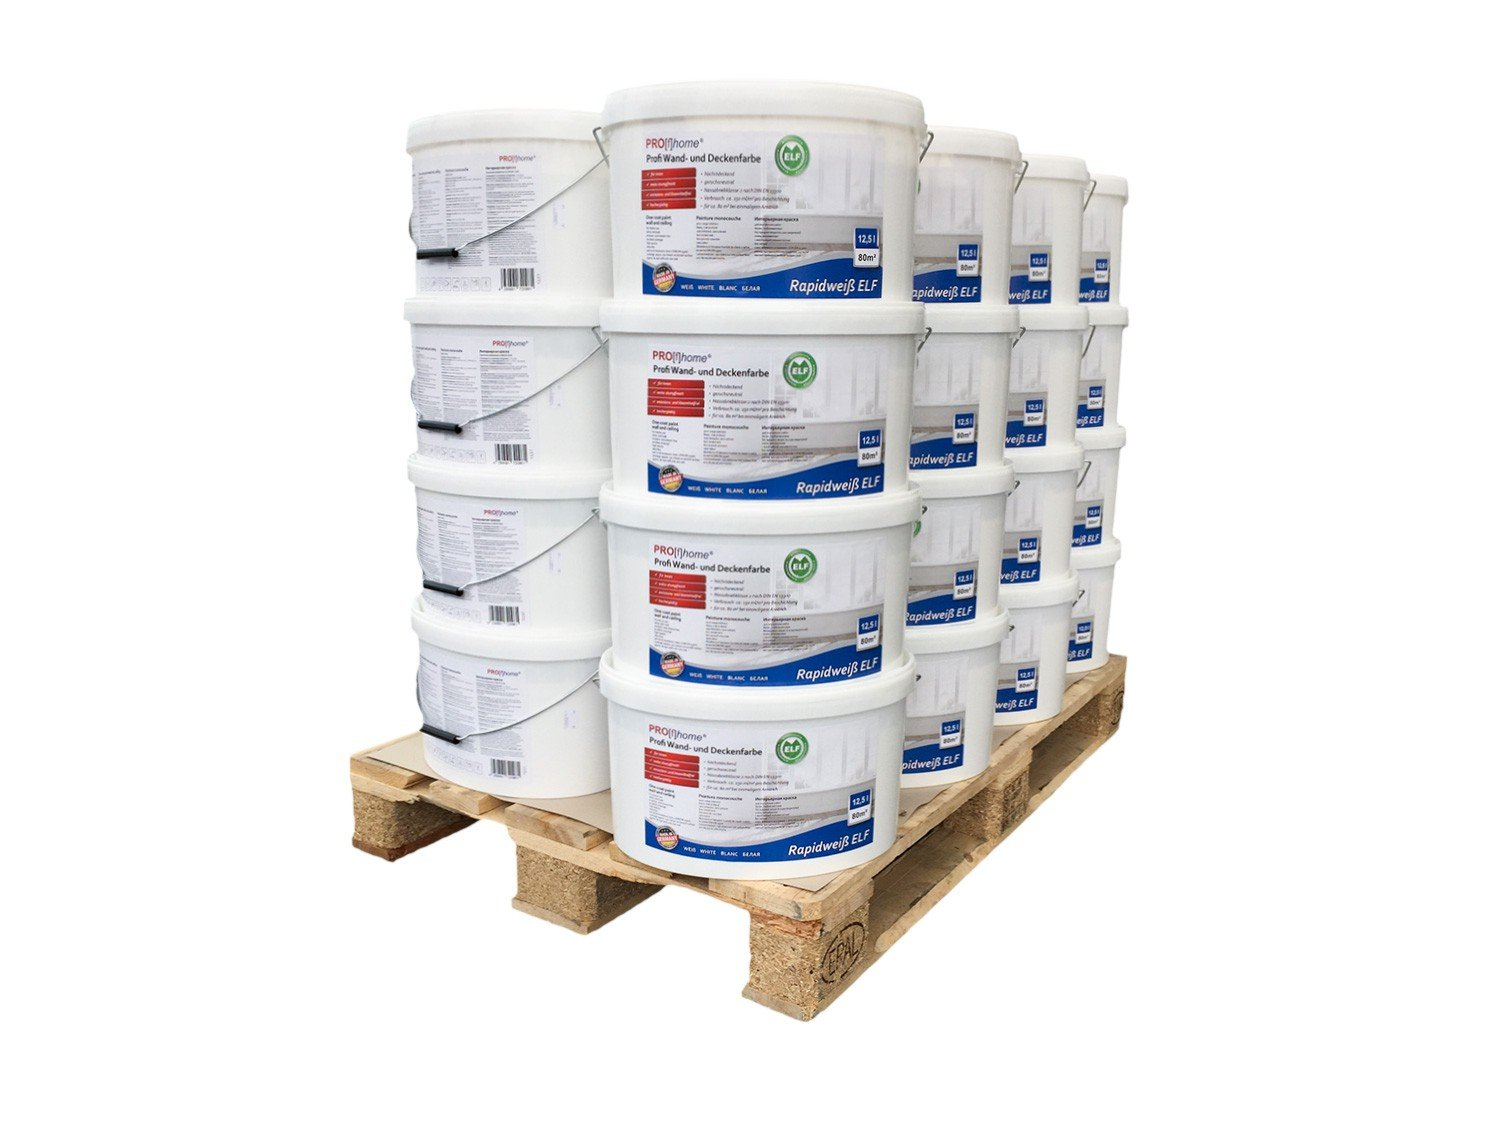 Wall paint PROFHOME ELF professional paint for interior walls ceilings abrasion resistant white matt | 1 pal. 32 buckets